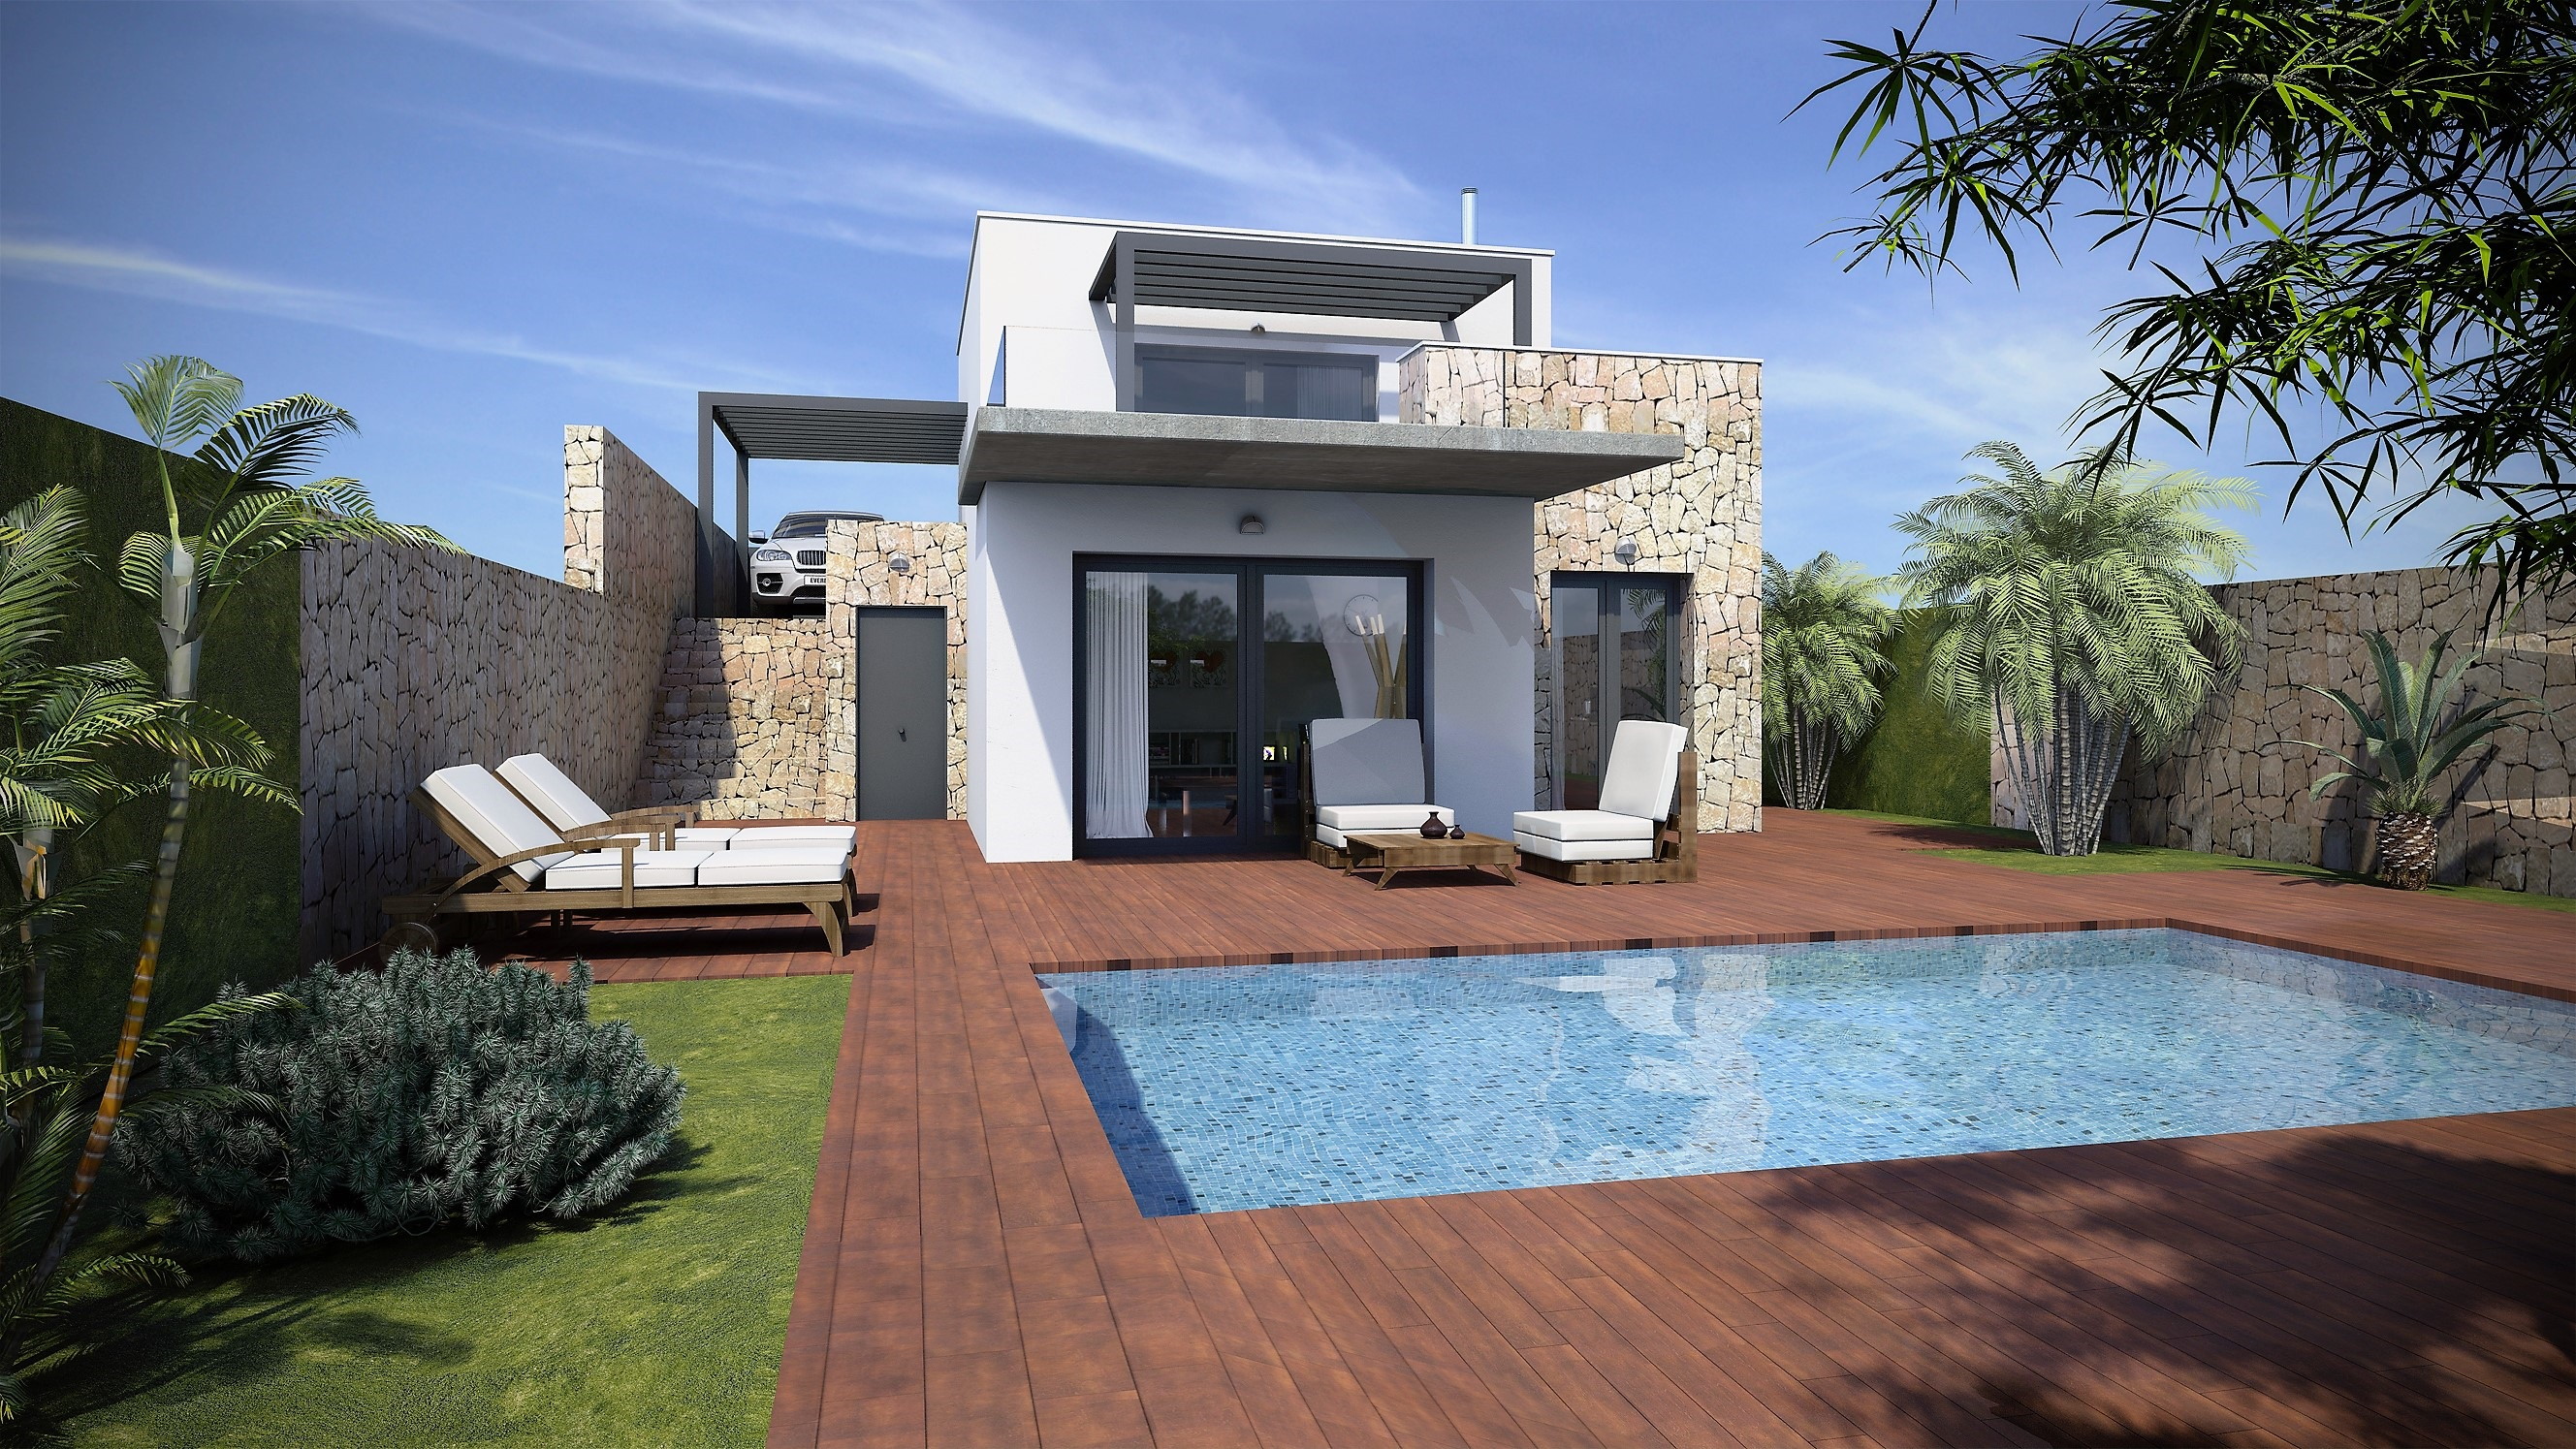 3 bedroom Villa for sale in Alcalali